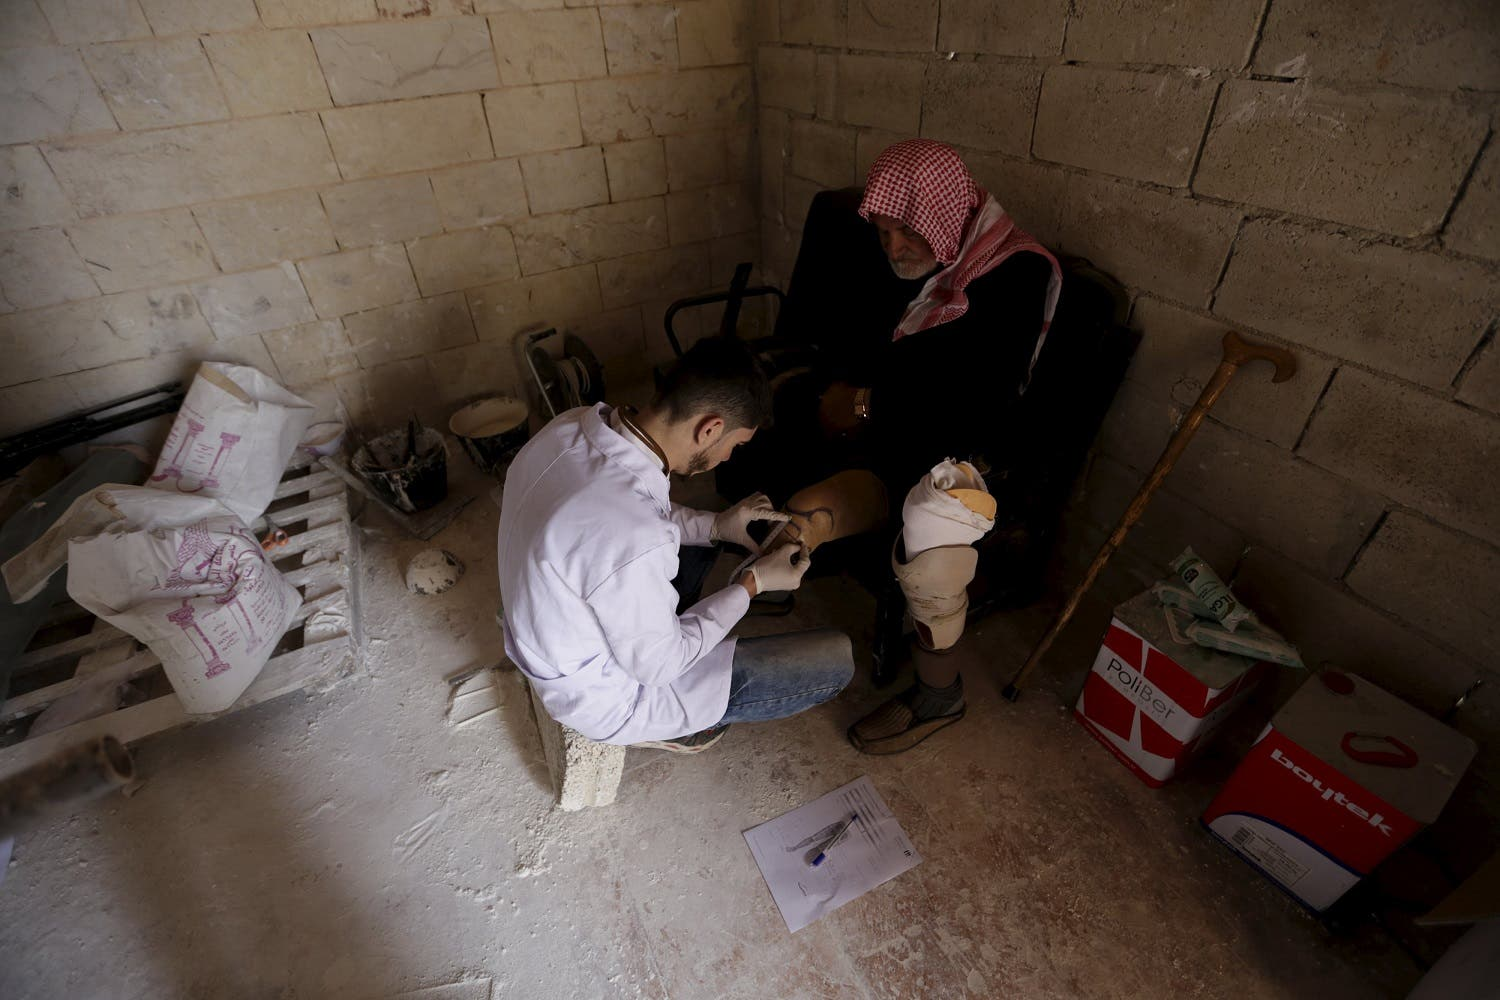 Khlouf, 25, prepares an artificial limb for a man with an amputated leg in the rebel-controlled area of Maaret al-Numan town in Idlib province, Syria March 20, 2016. REuters